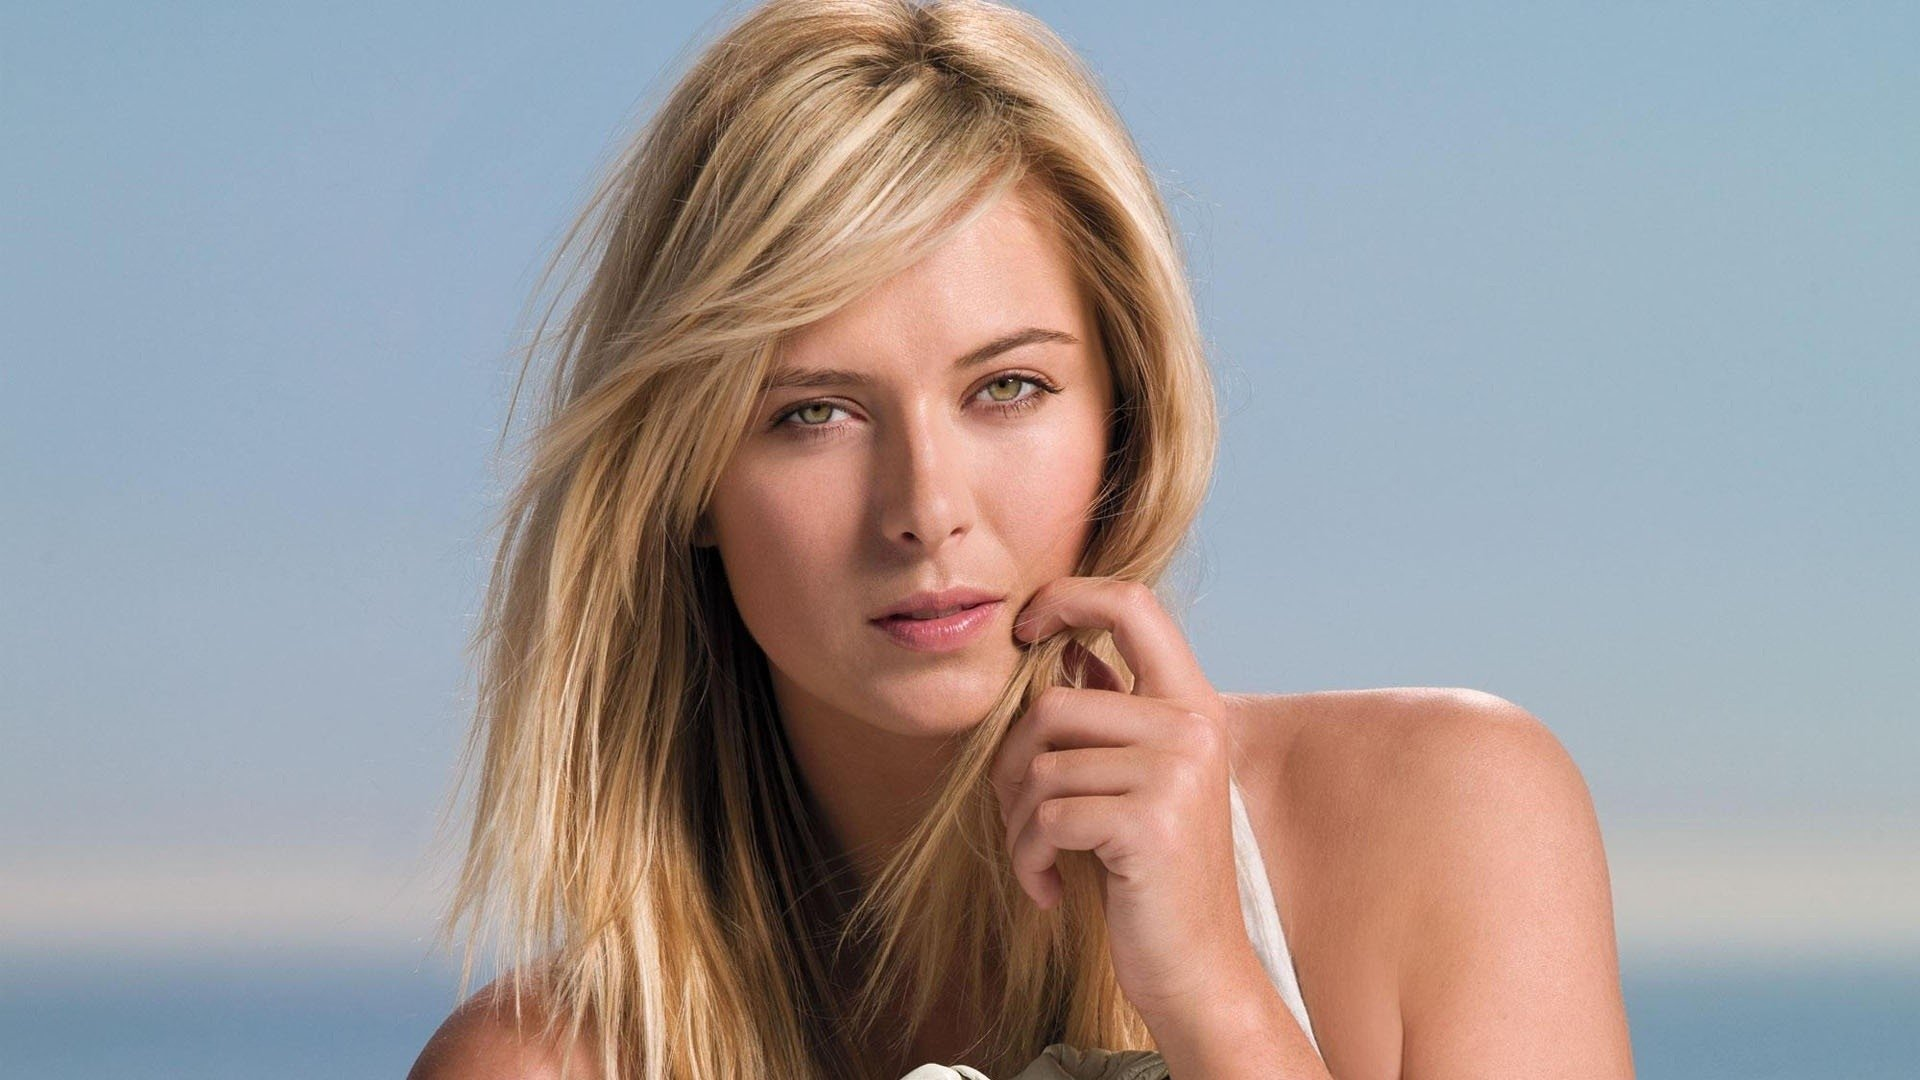 Ultra HD Maria Sharapova Wallpapers CEGT278   4USkY 1920x1080